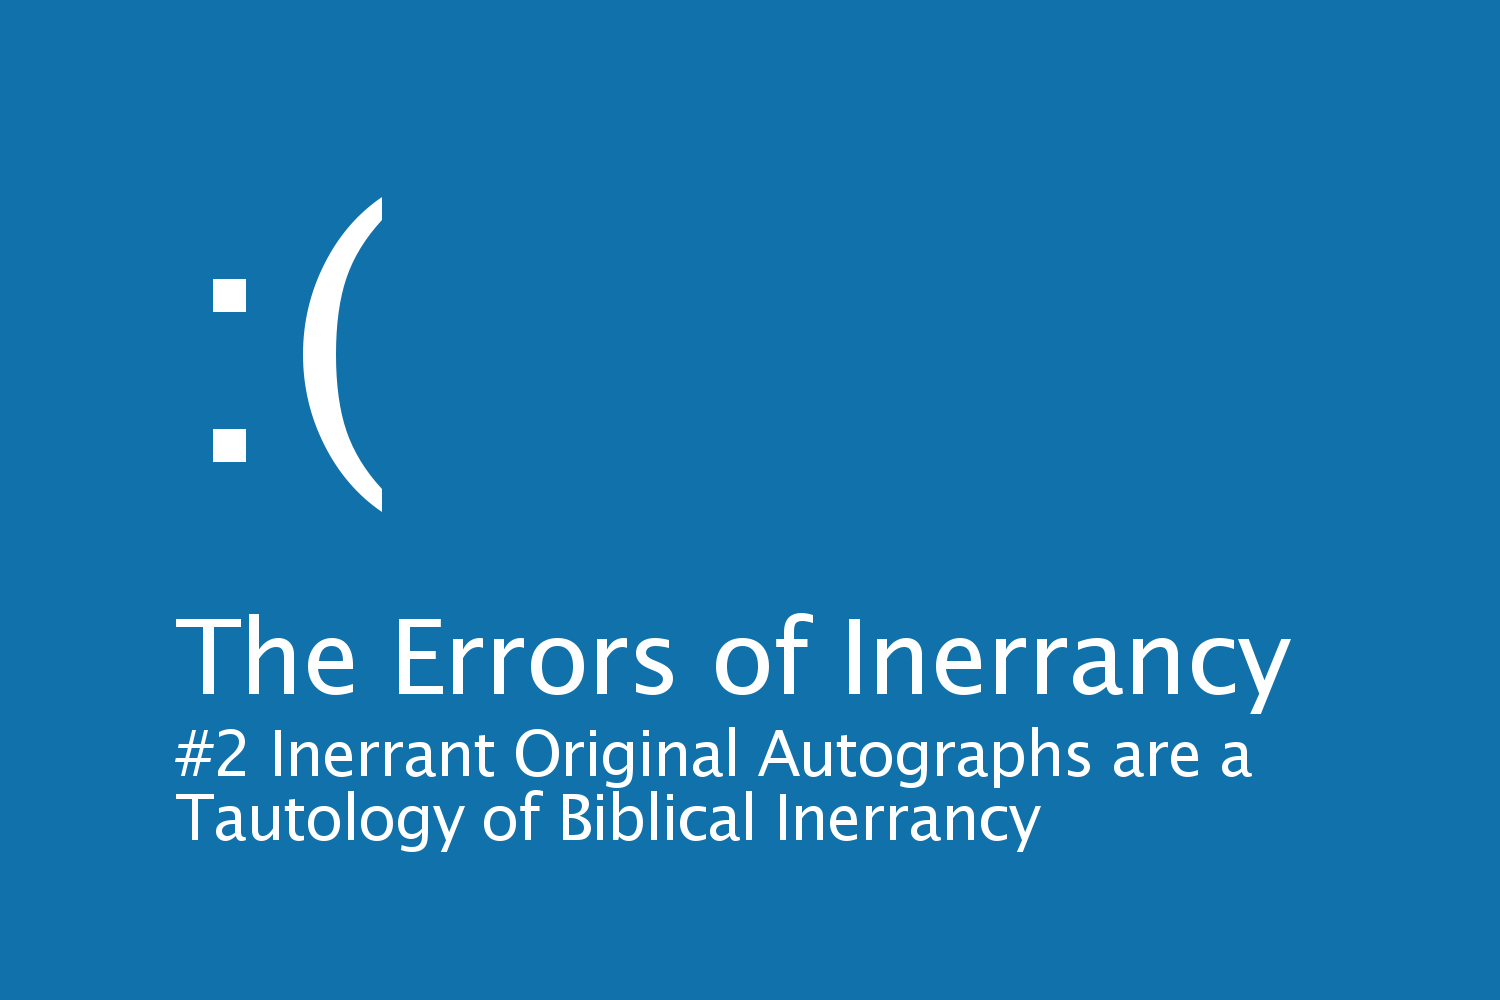 The Errors of Inerrancy: #2 Inerrant Original Autographs are a Tautology of Biblical Inerrancy